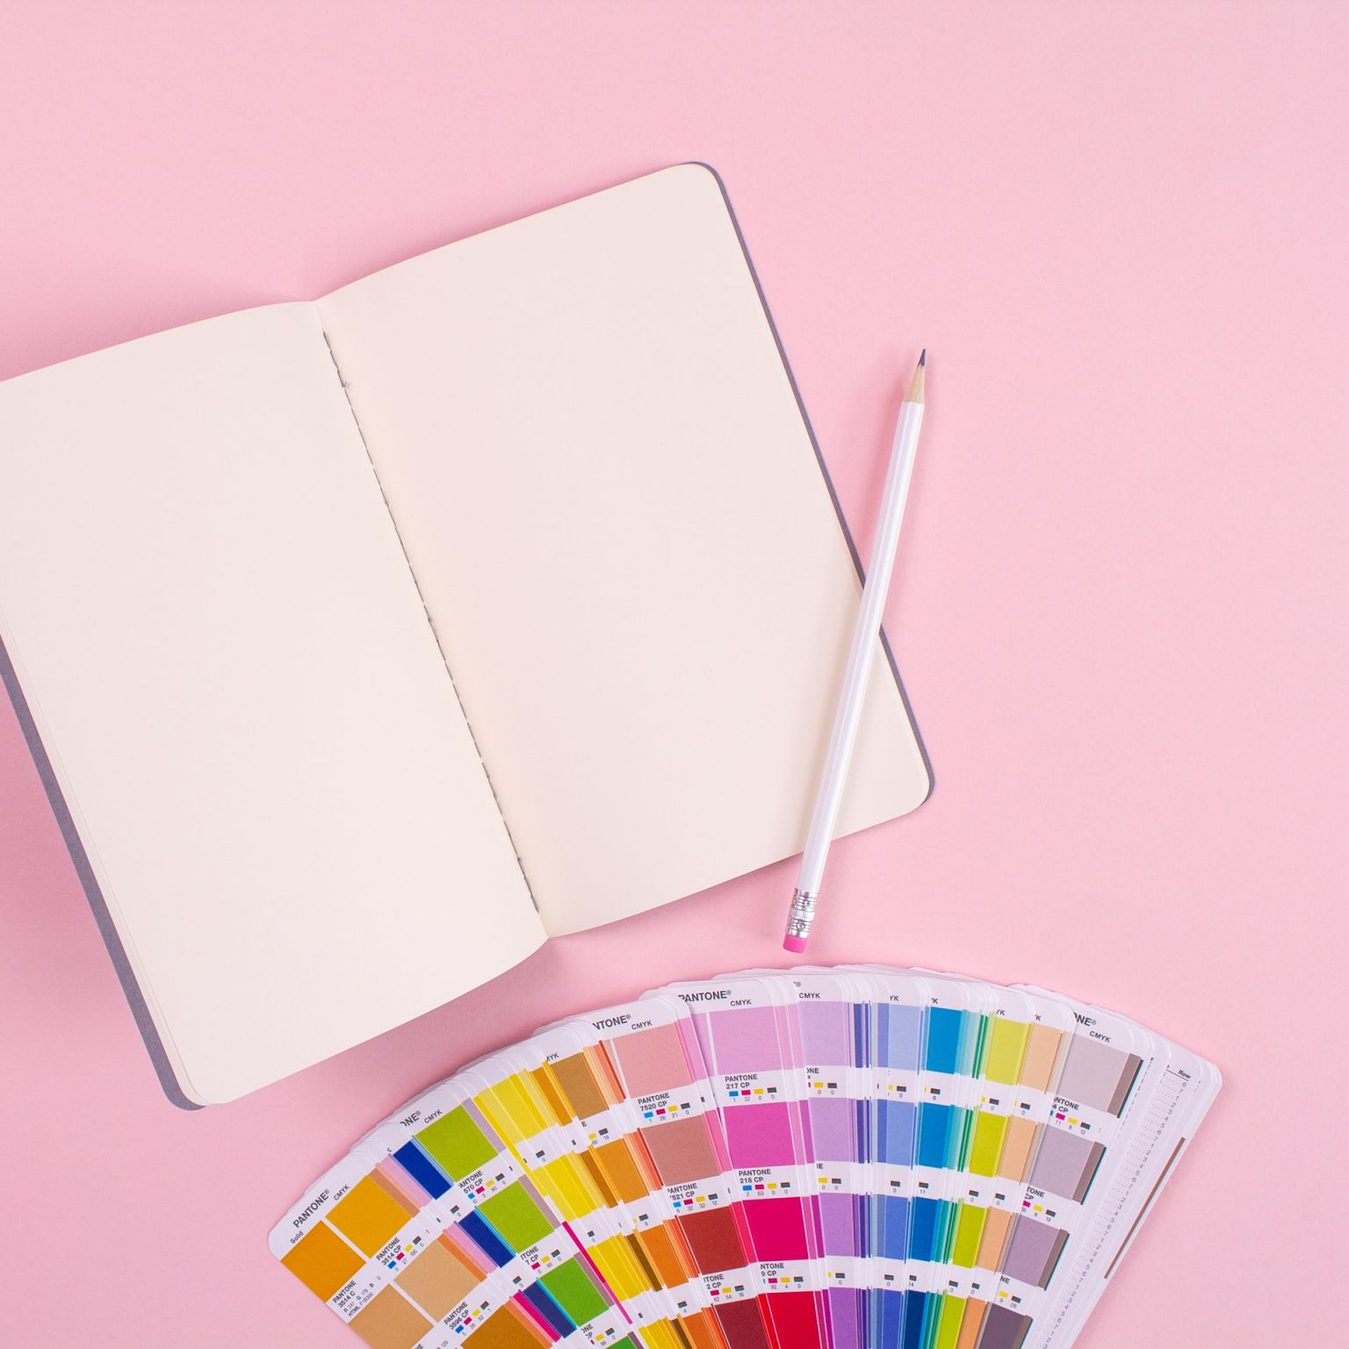 Color swaps and a journal with a pen against a pink background